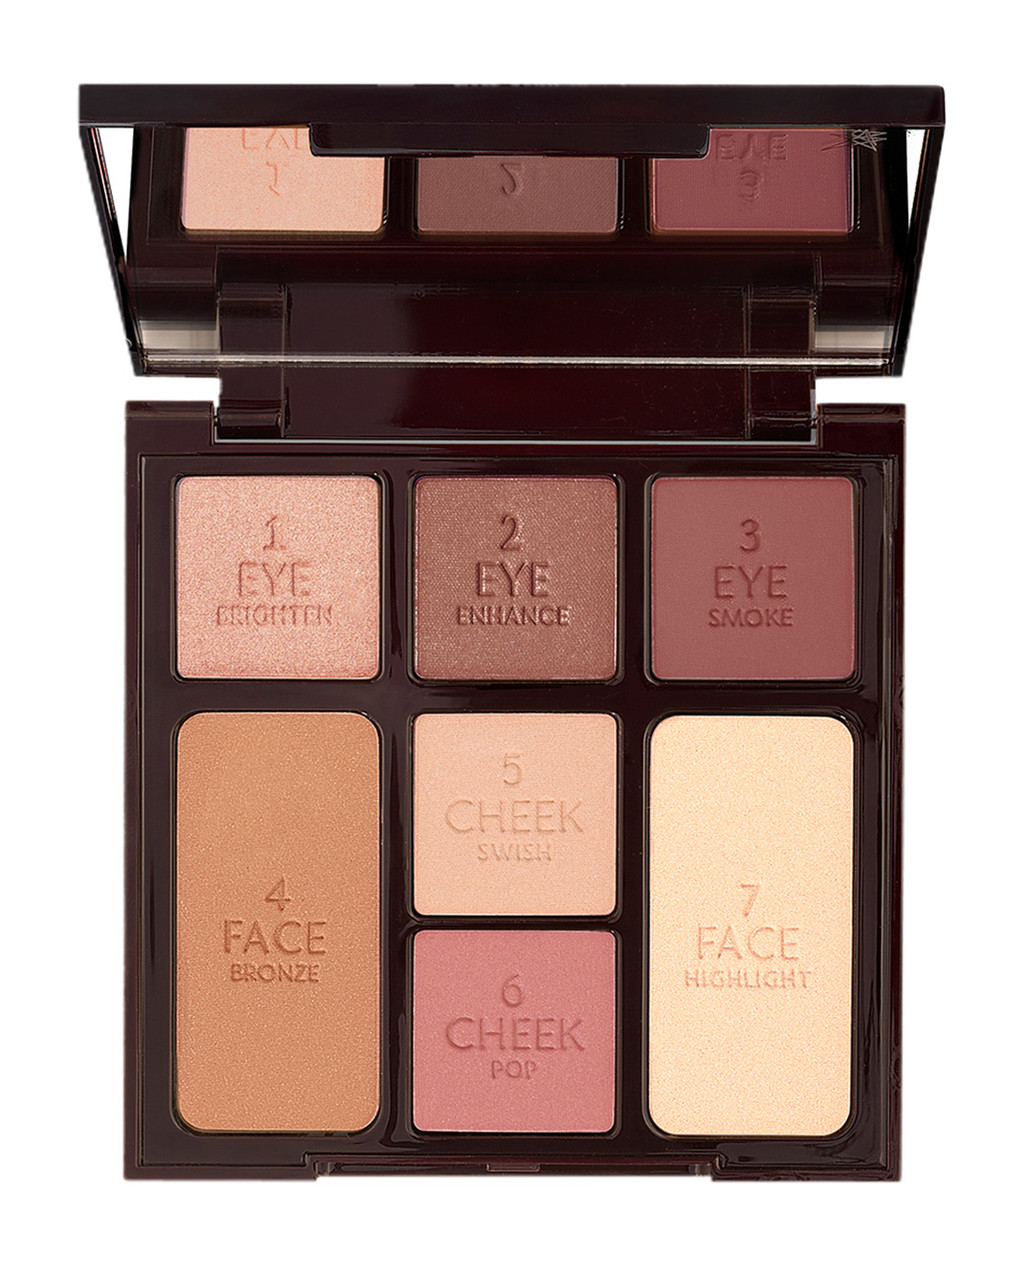 Палетка для лица и век Charlotte Tilbury Instant look in a palette gorgeous glowing beauty